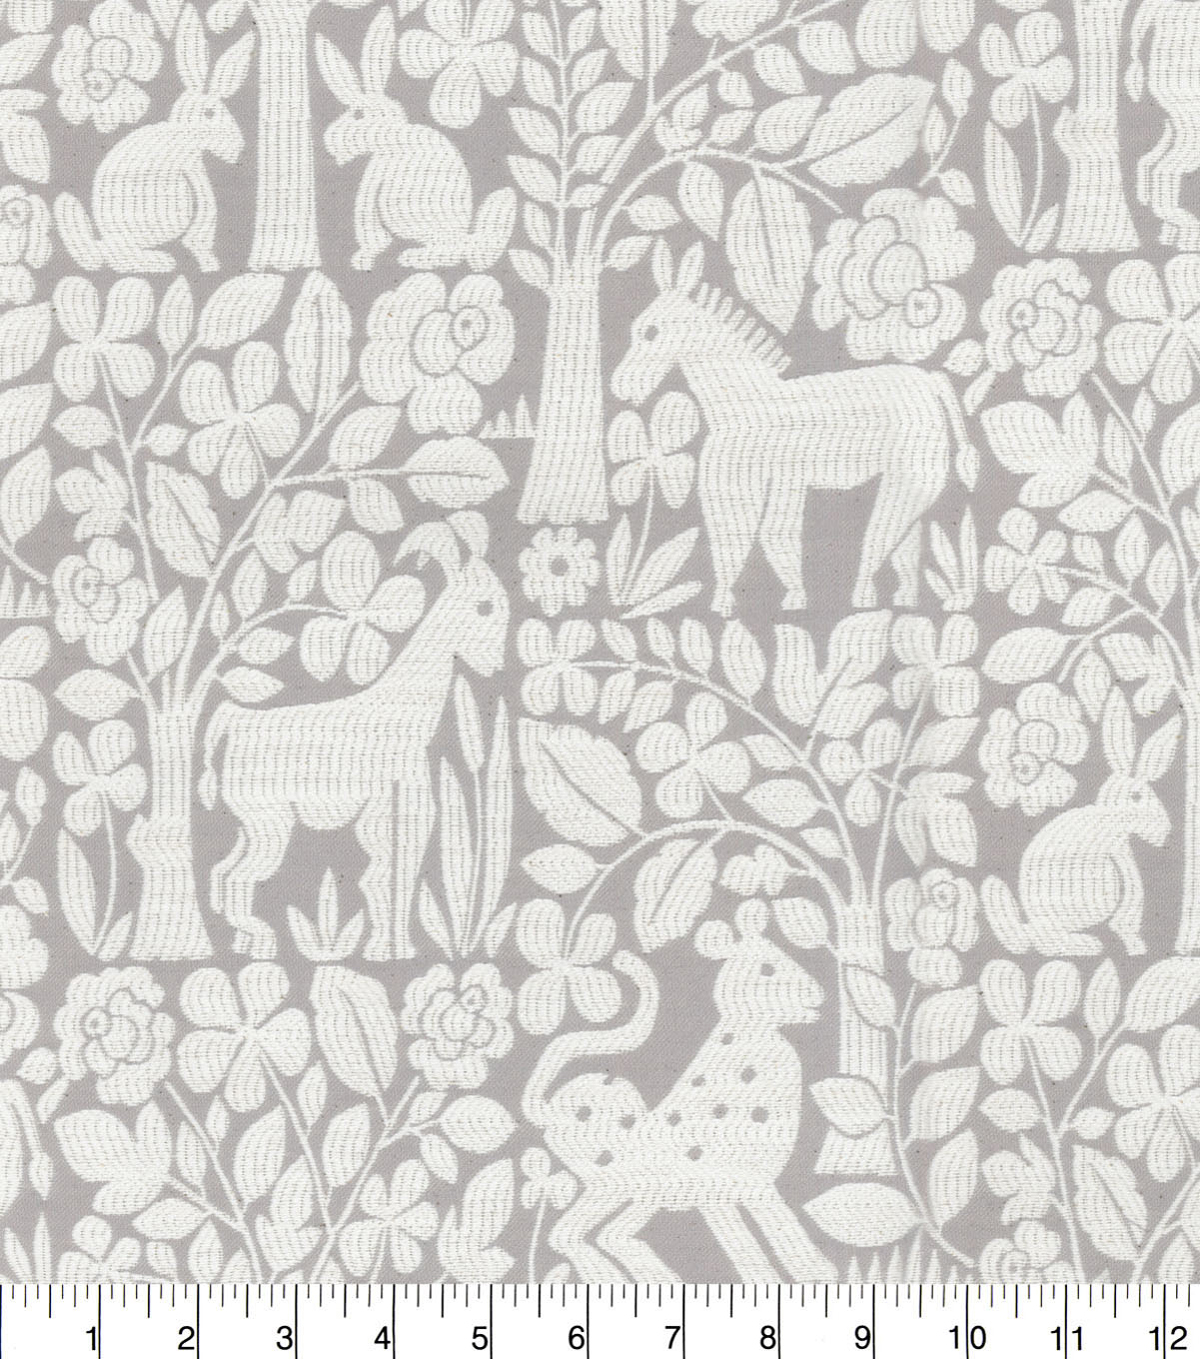 Waverly Upholstery Décor Fabric 9\u0022x9\u0022 Swatch-Forest Friends Mineral